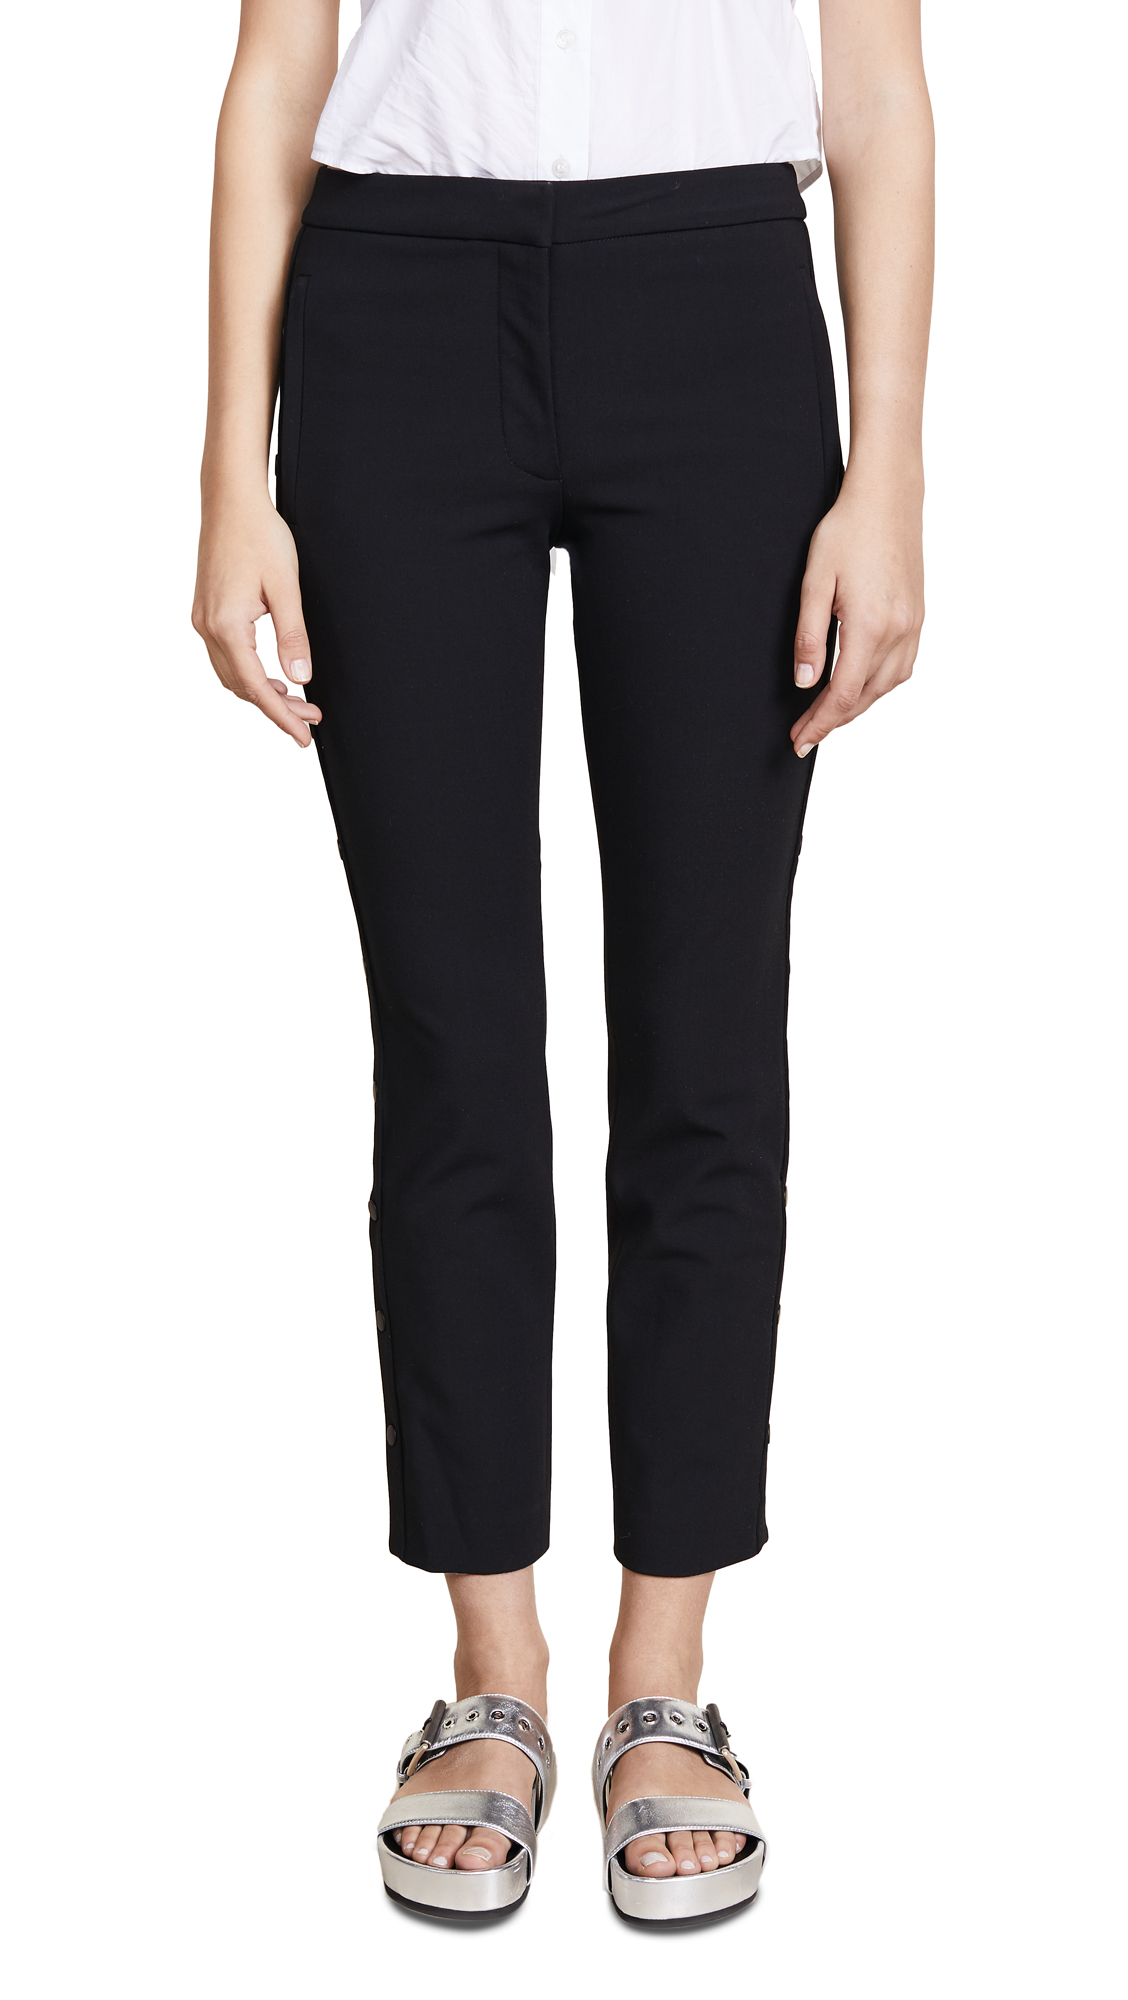 Tibi Anson Stretch Cropped Snap Skinny Pants - Black